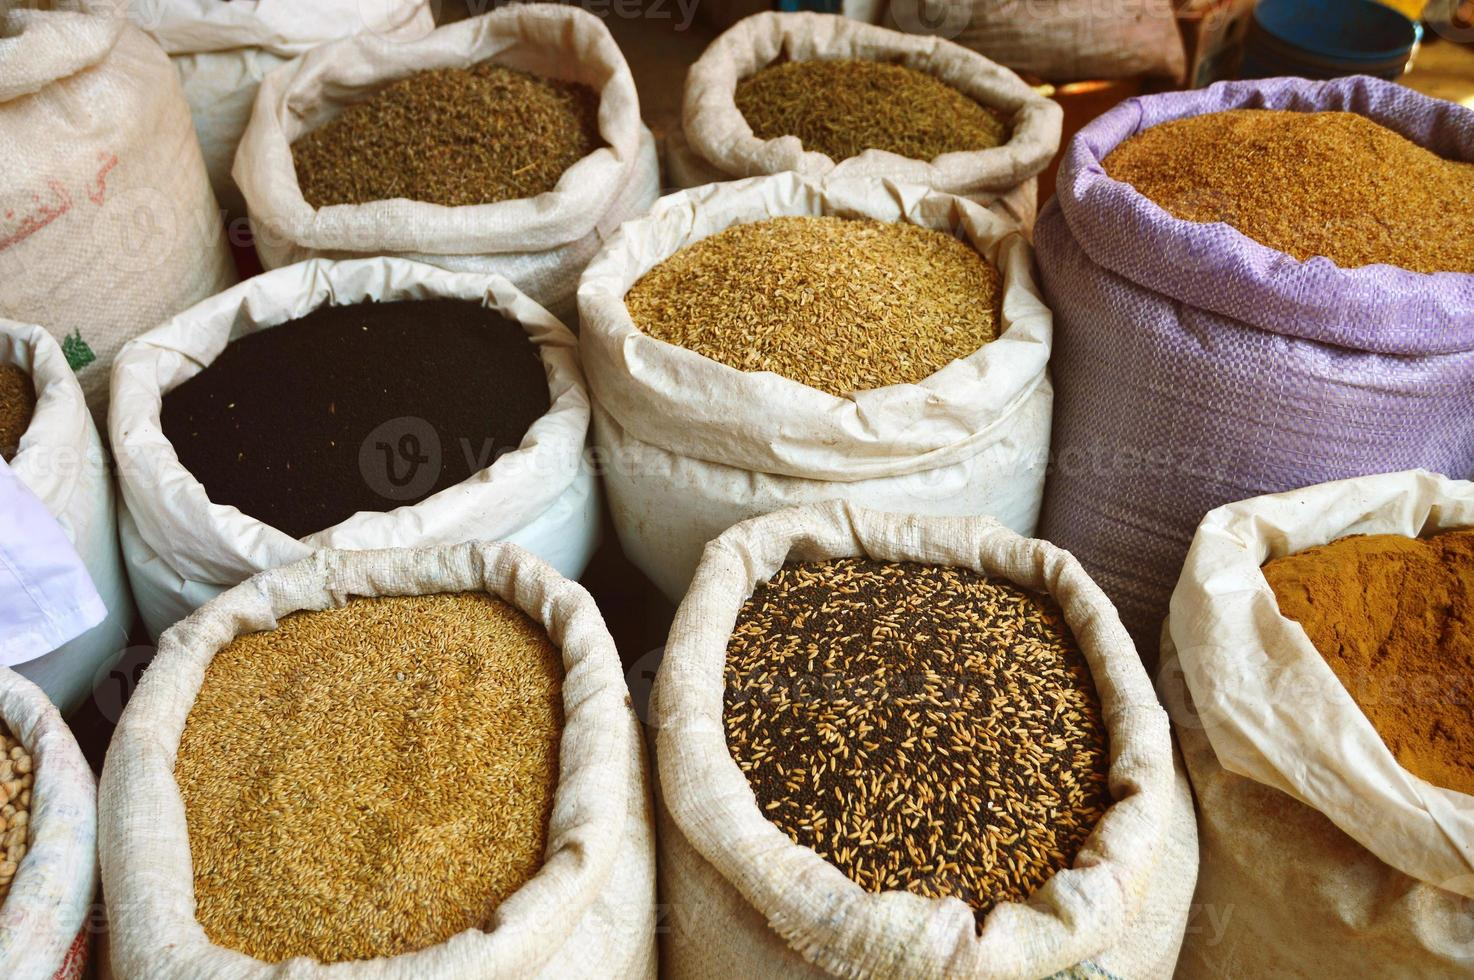 Grain food and spices in Arabic store photo